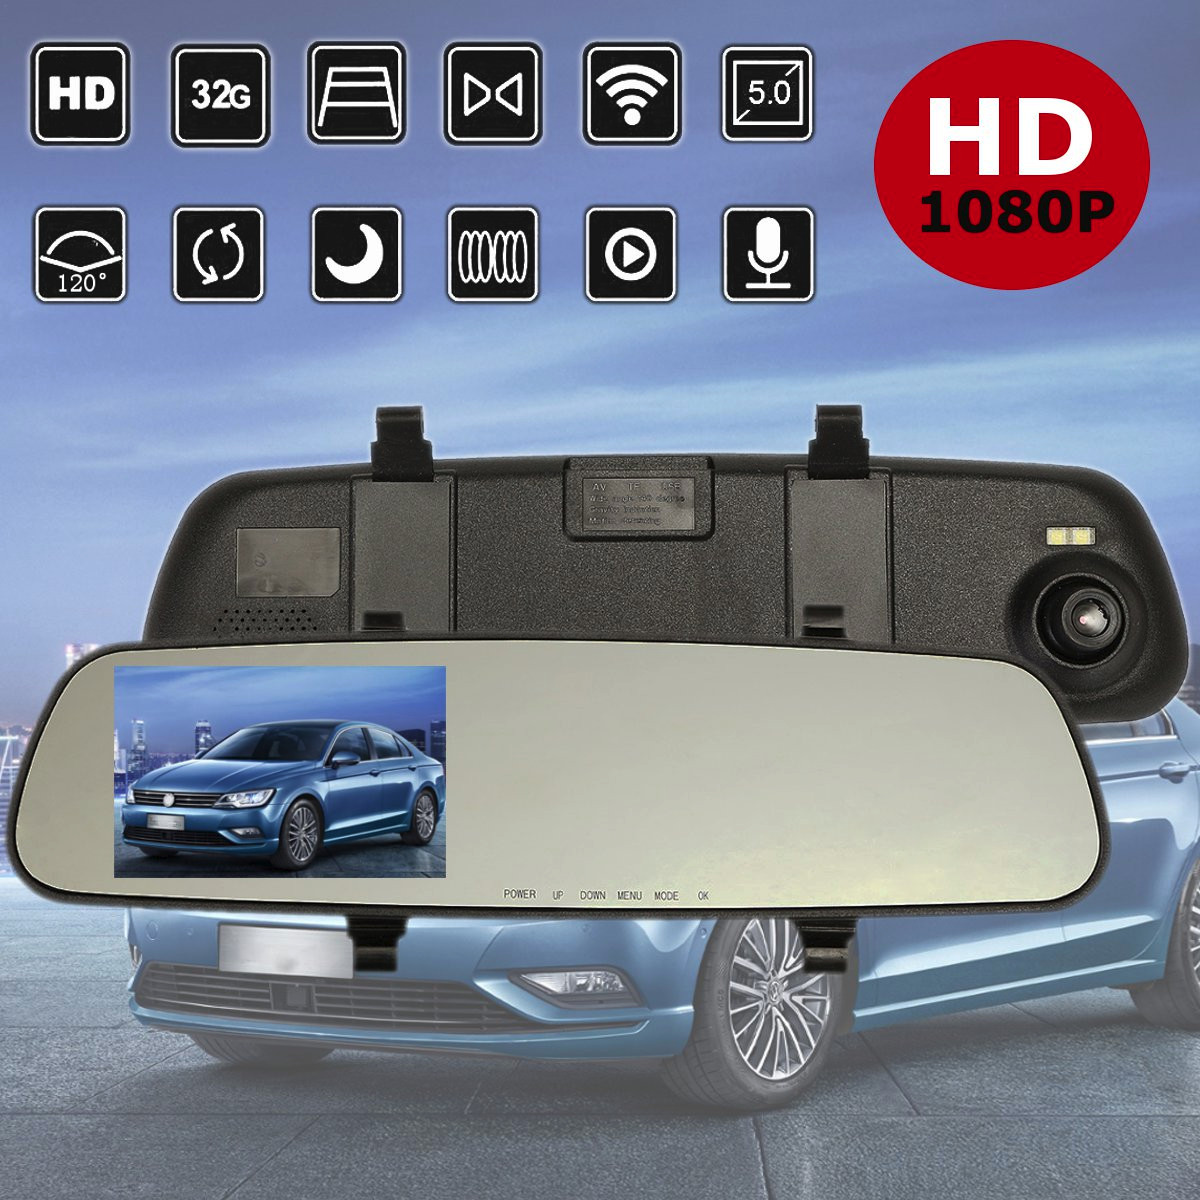 2.4 Inch Car DVR Rear View Mirror 1080P Android Front Rear Camera Recorder